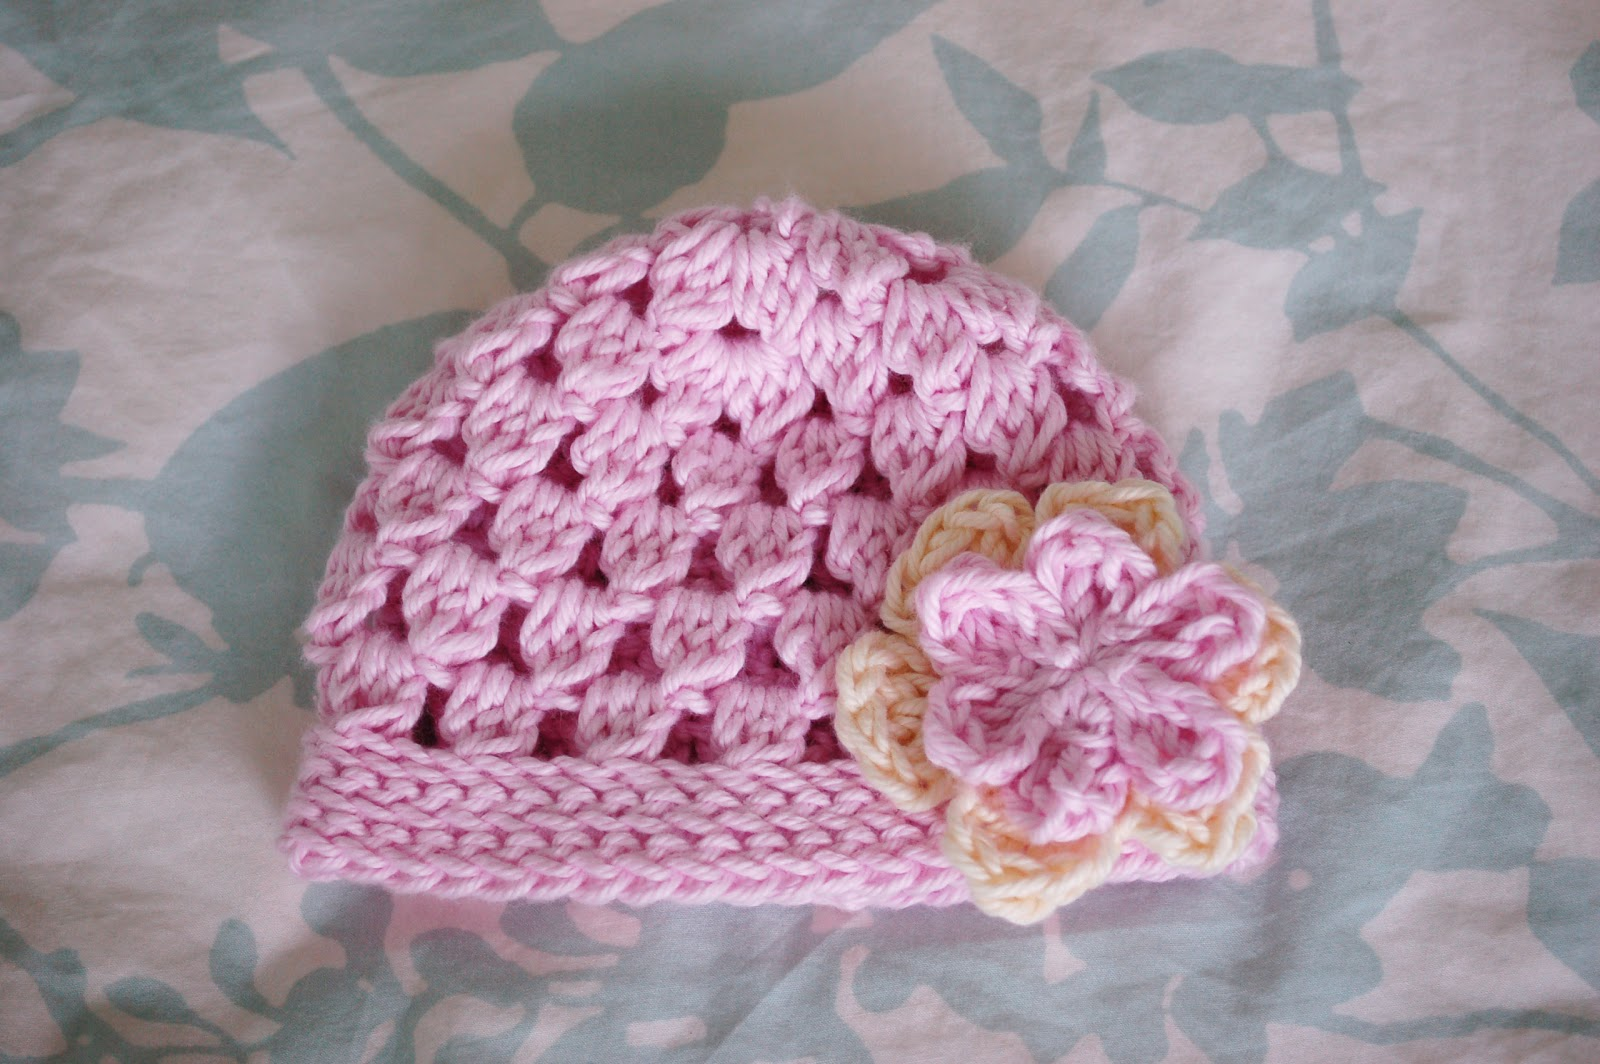 Free Crochet Patterns For A Baby Blanket : Alli Crafts: Free Pattern: Cluster Hat - Newborn